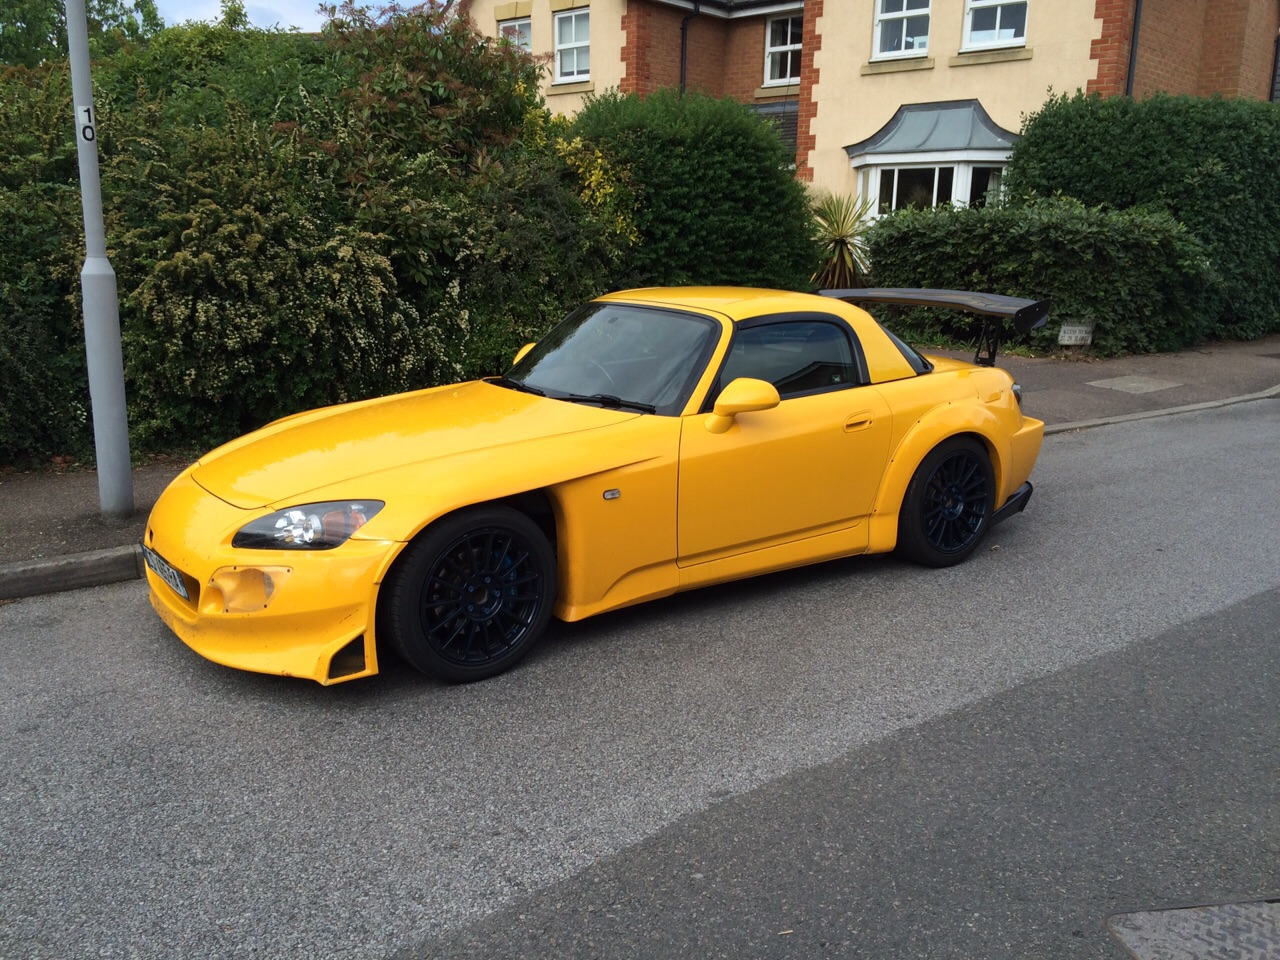 My brother's Spoon S2000 that he bought recently :D